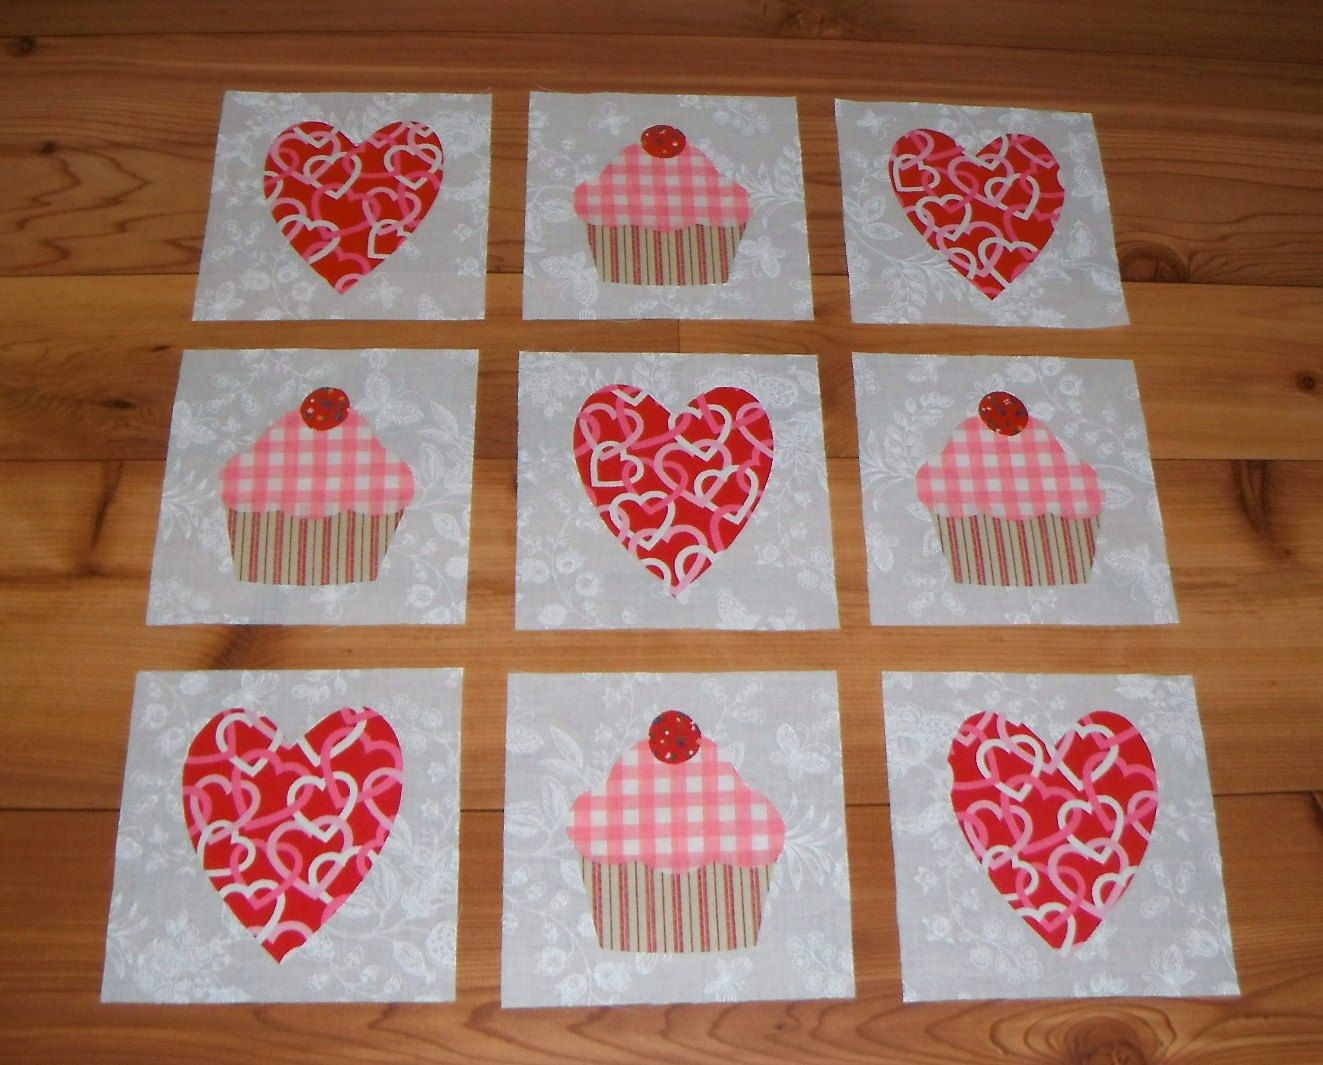 Set of 9 shabby pink cupcakes and valentine hearts quilt blocks